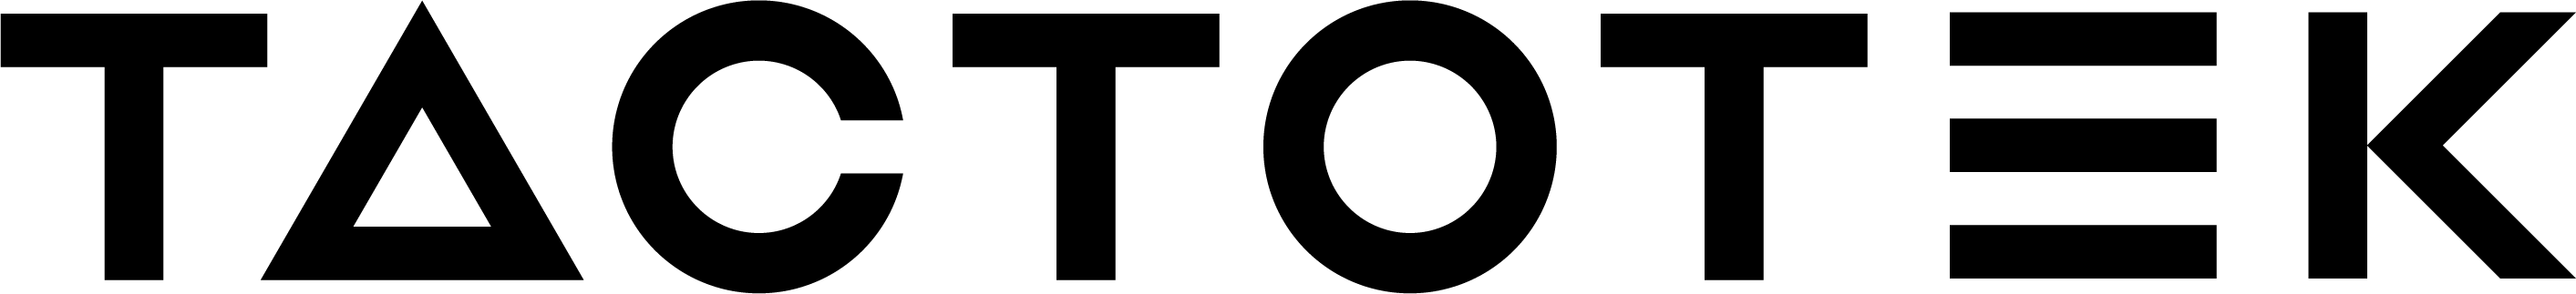 Cornes Technologies To Sell Tactotek Injection Molded Structural